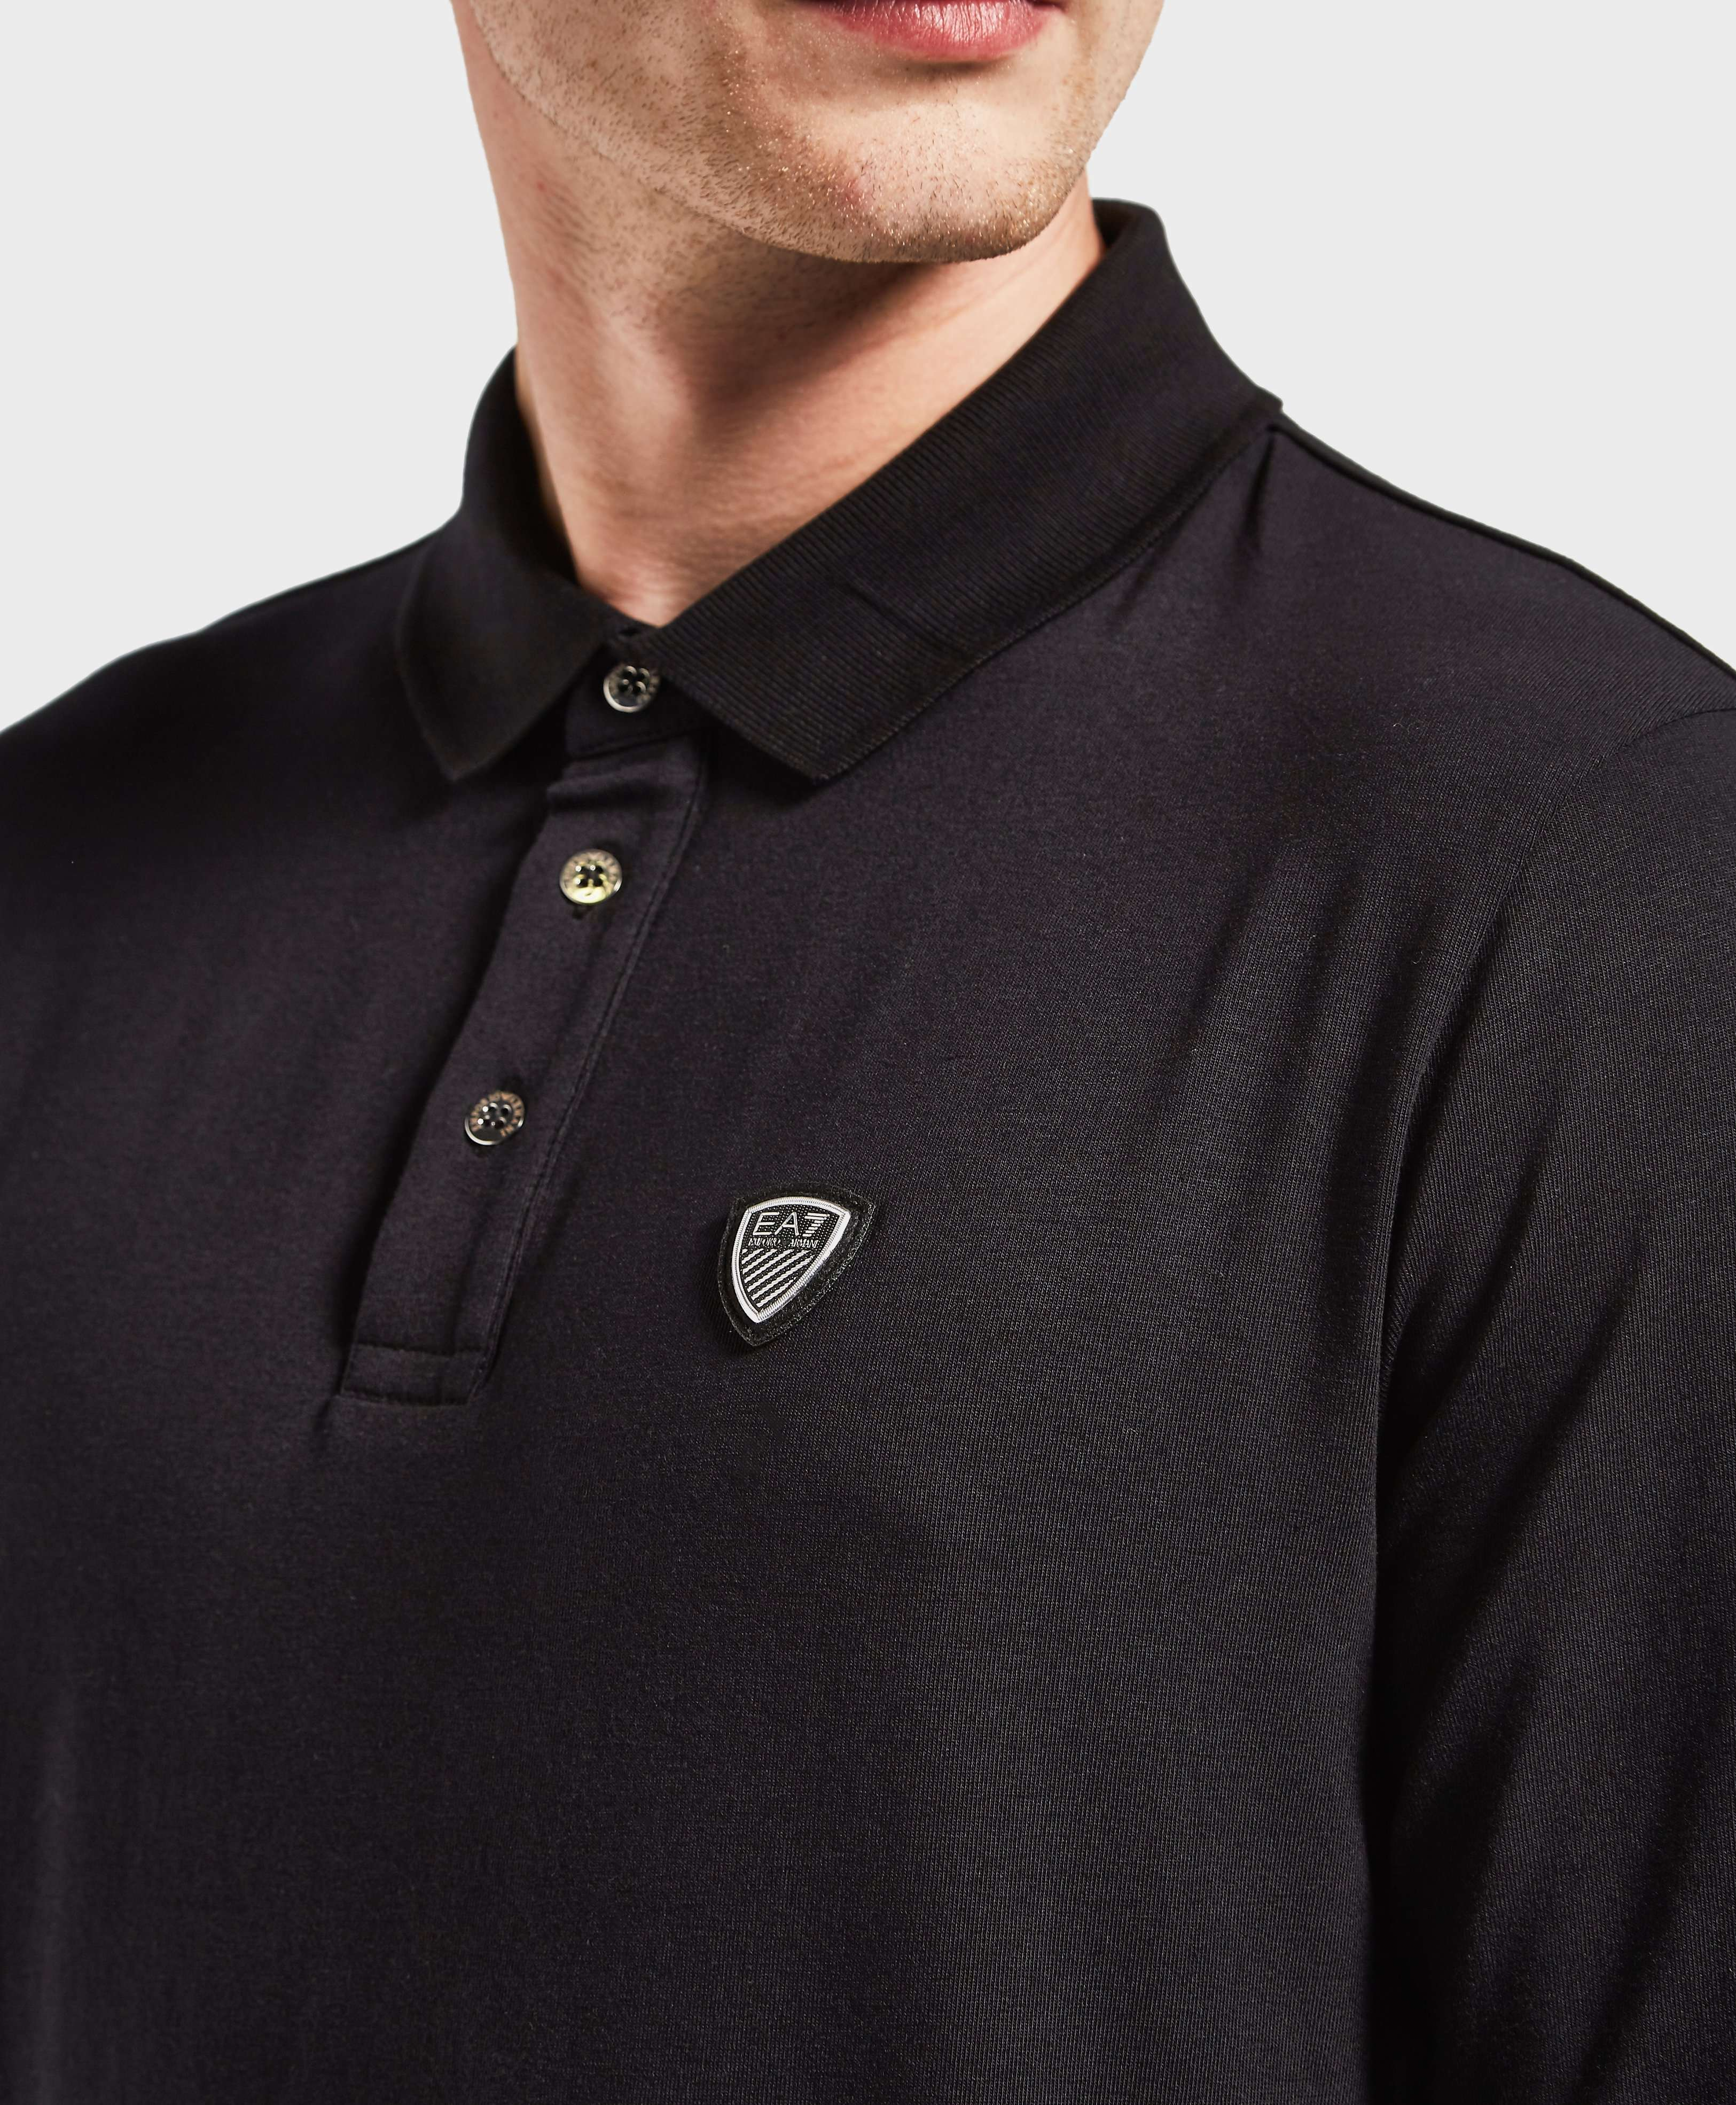 Emporio Armani EA7 Soccer Long Sleeve Polo Shirt